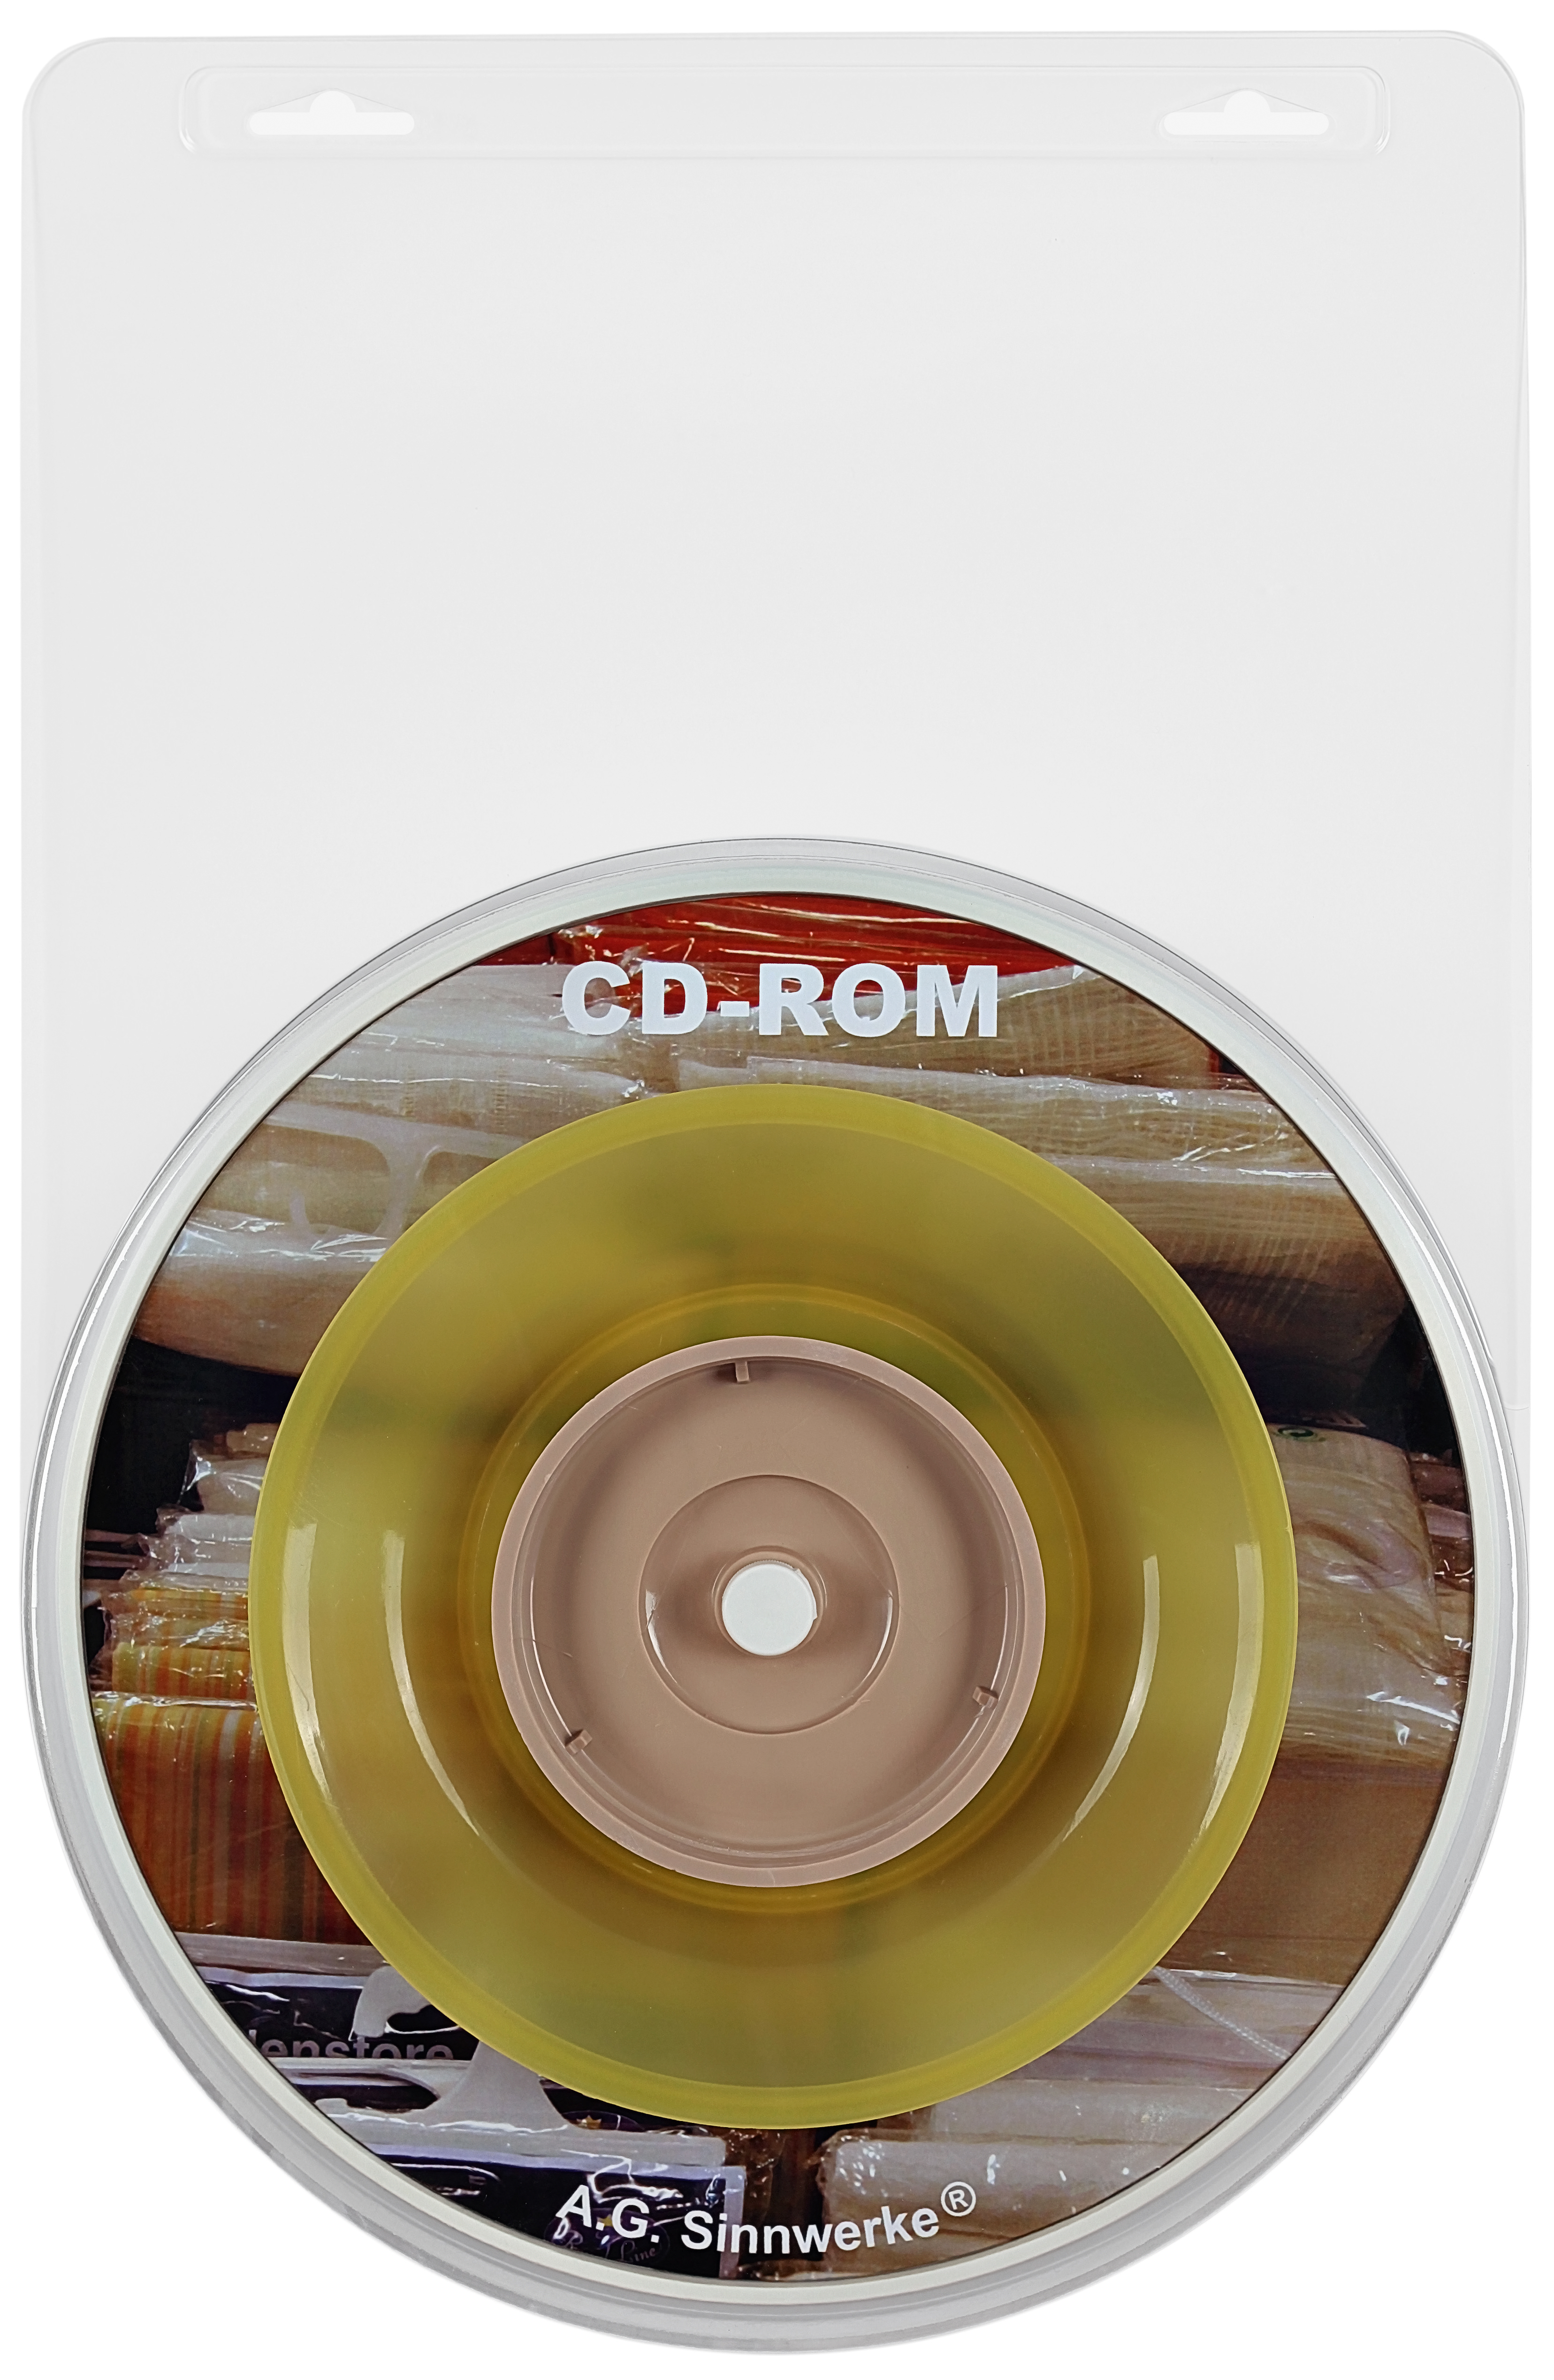 how to delete cd rom files